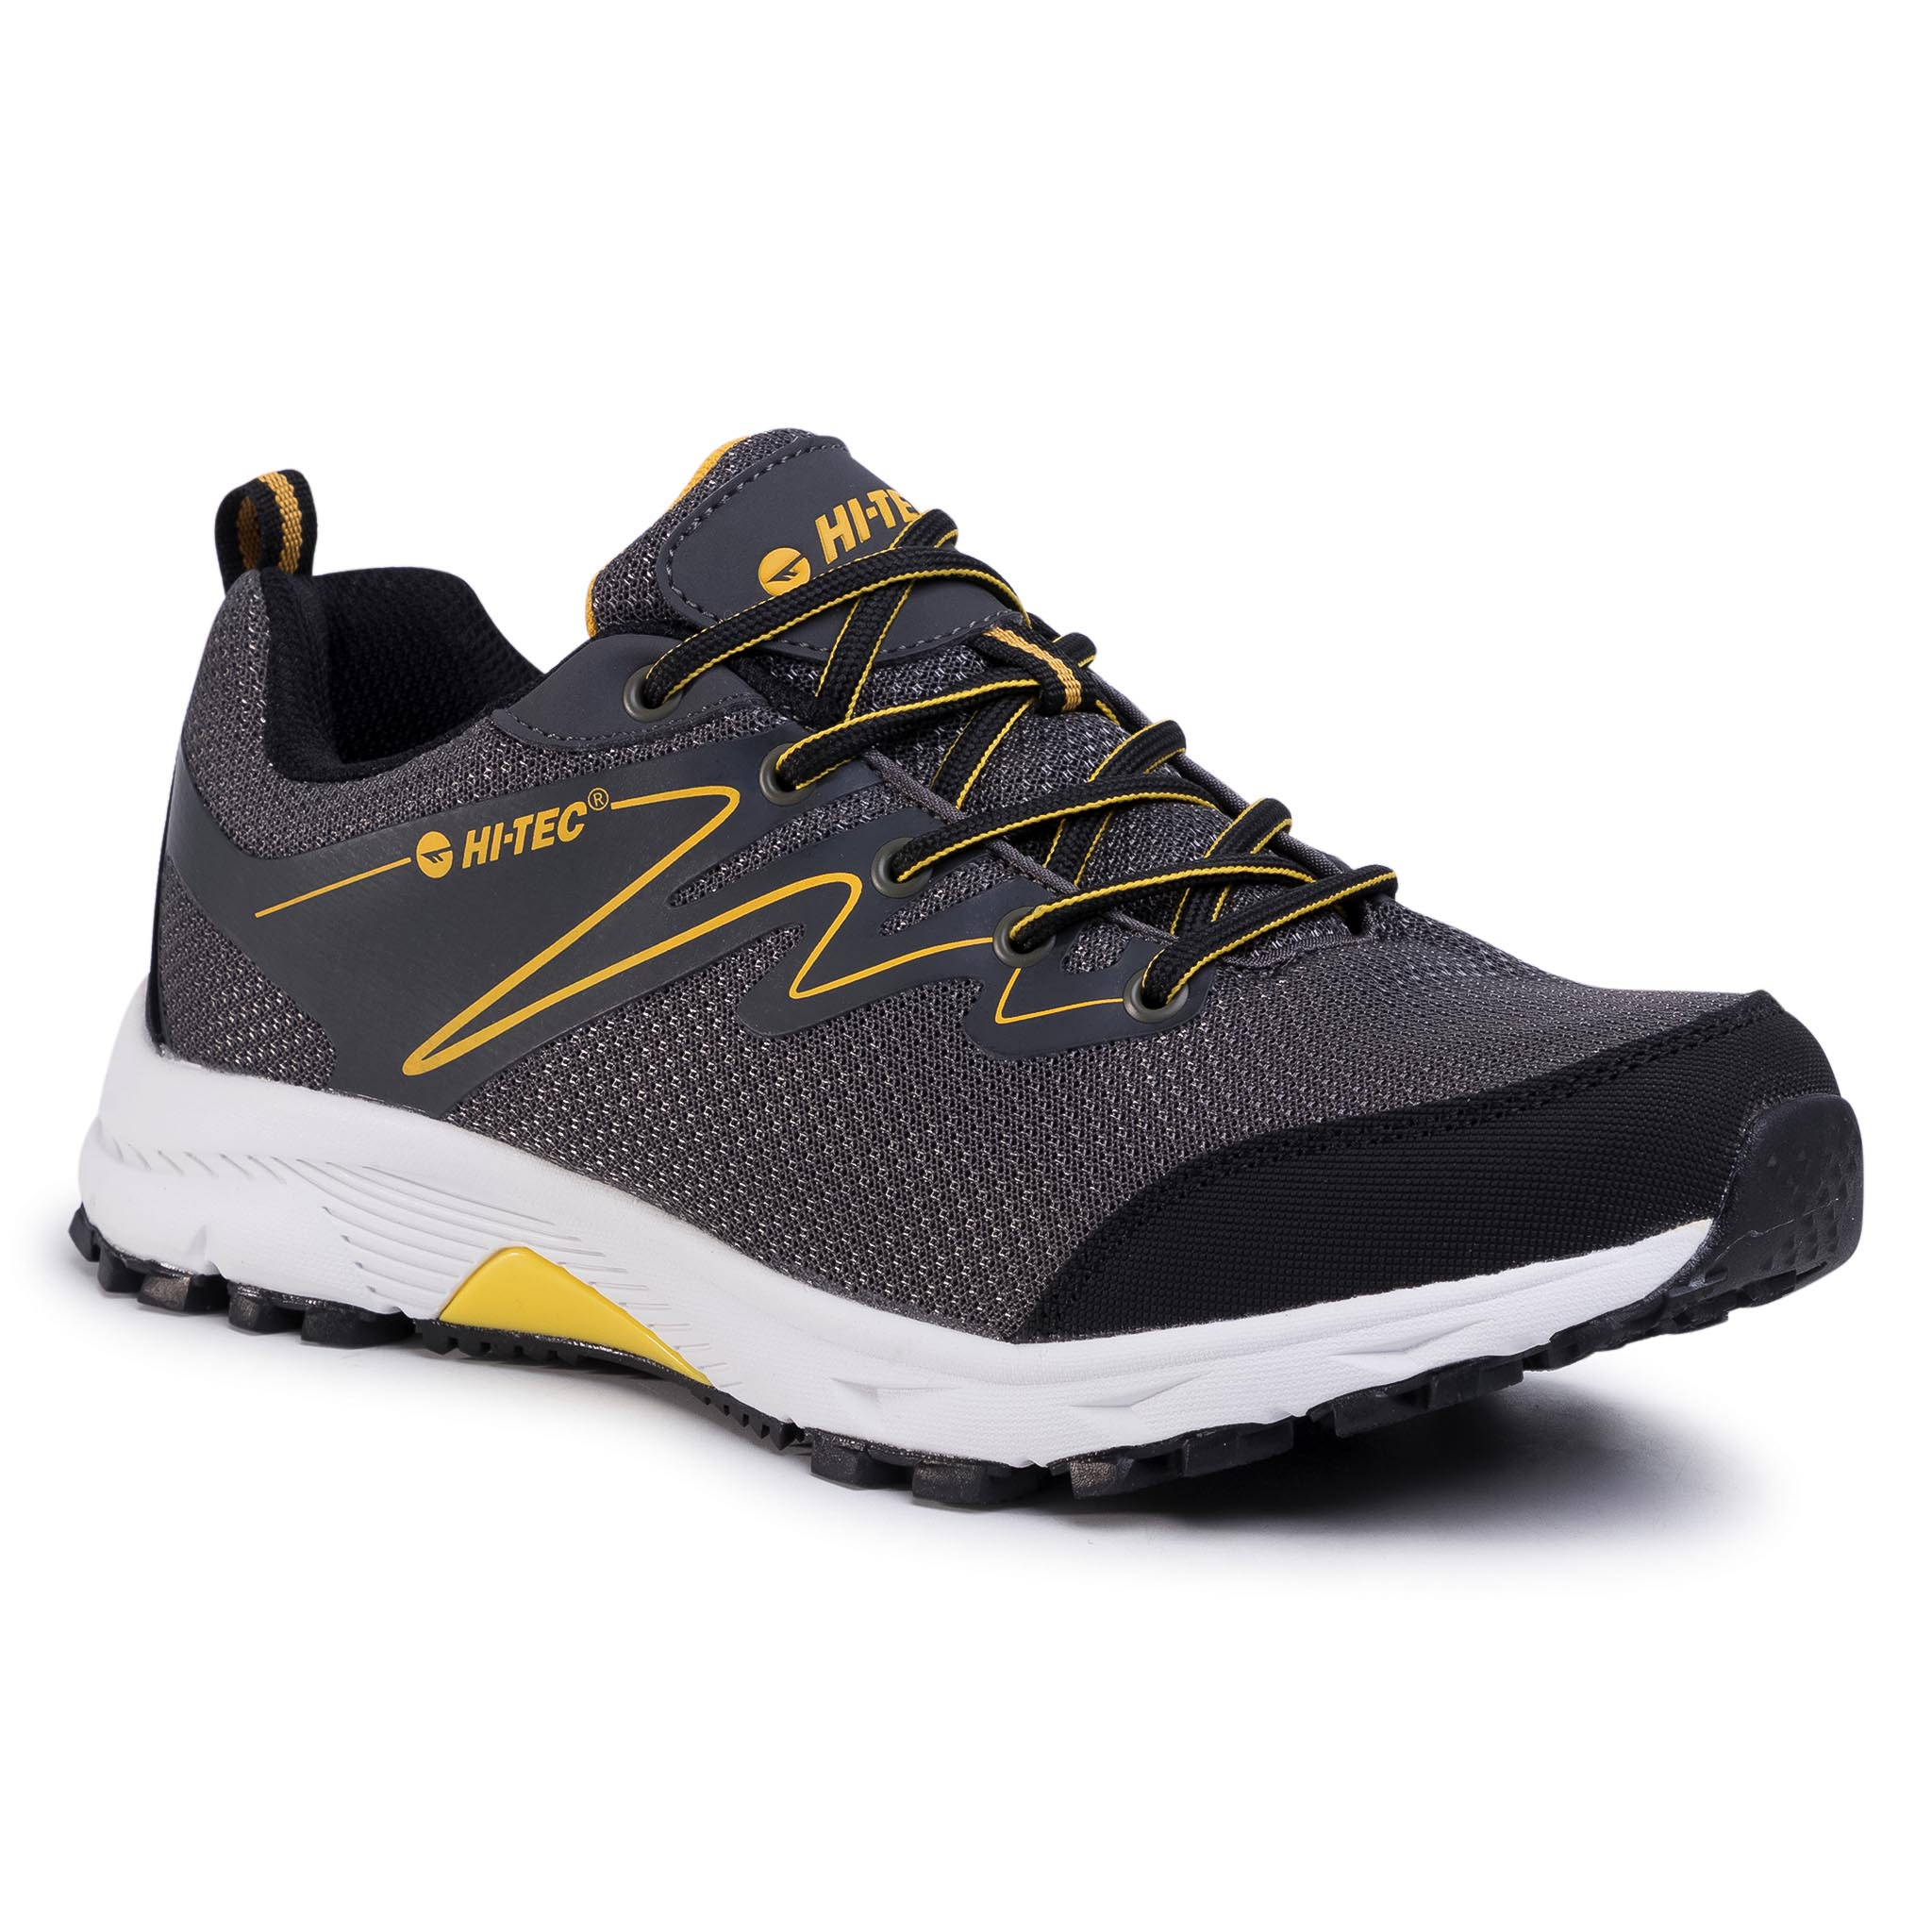 Trekkings HI-TEC - Gosen AVS-SS20-HT-01-Q1 Black/Dark Grey/Corn